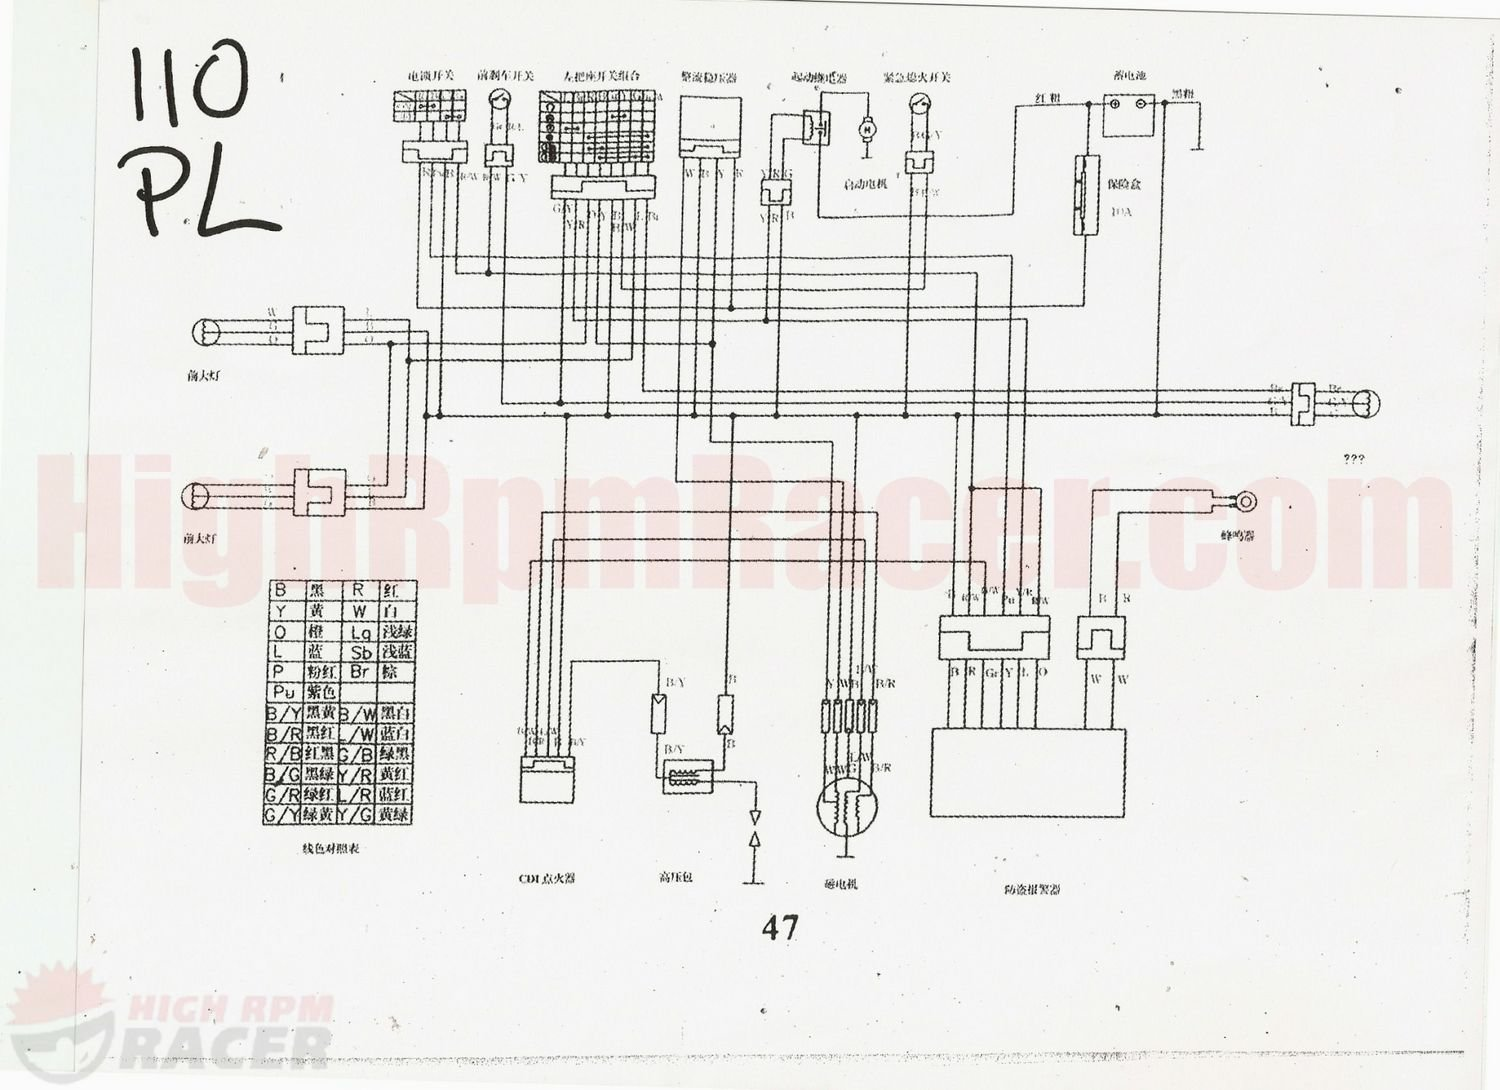 panther110pl_wd panther atv 110pl wiring diagram $0 00 coolster atv wiring diagram at soozxer.org